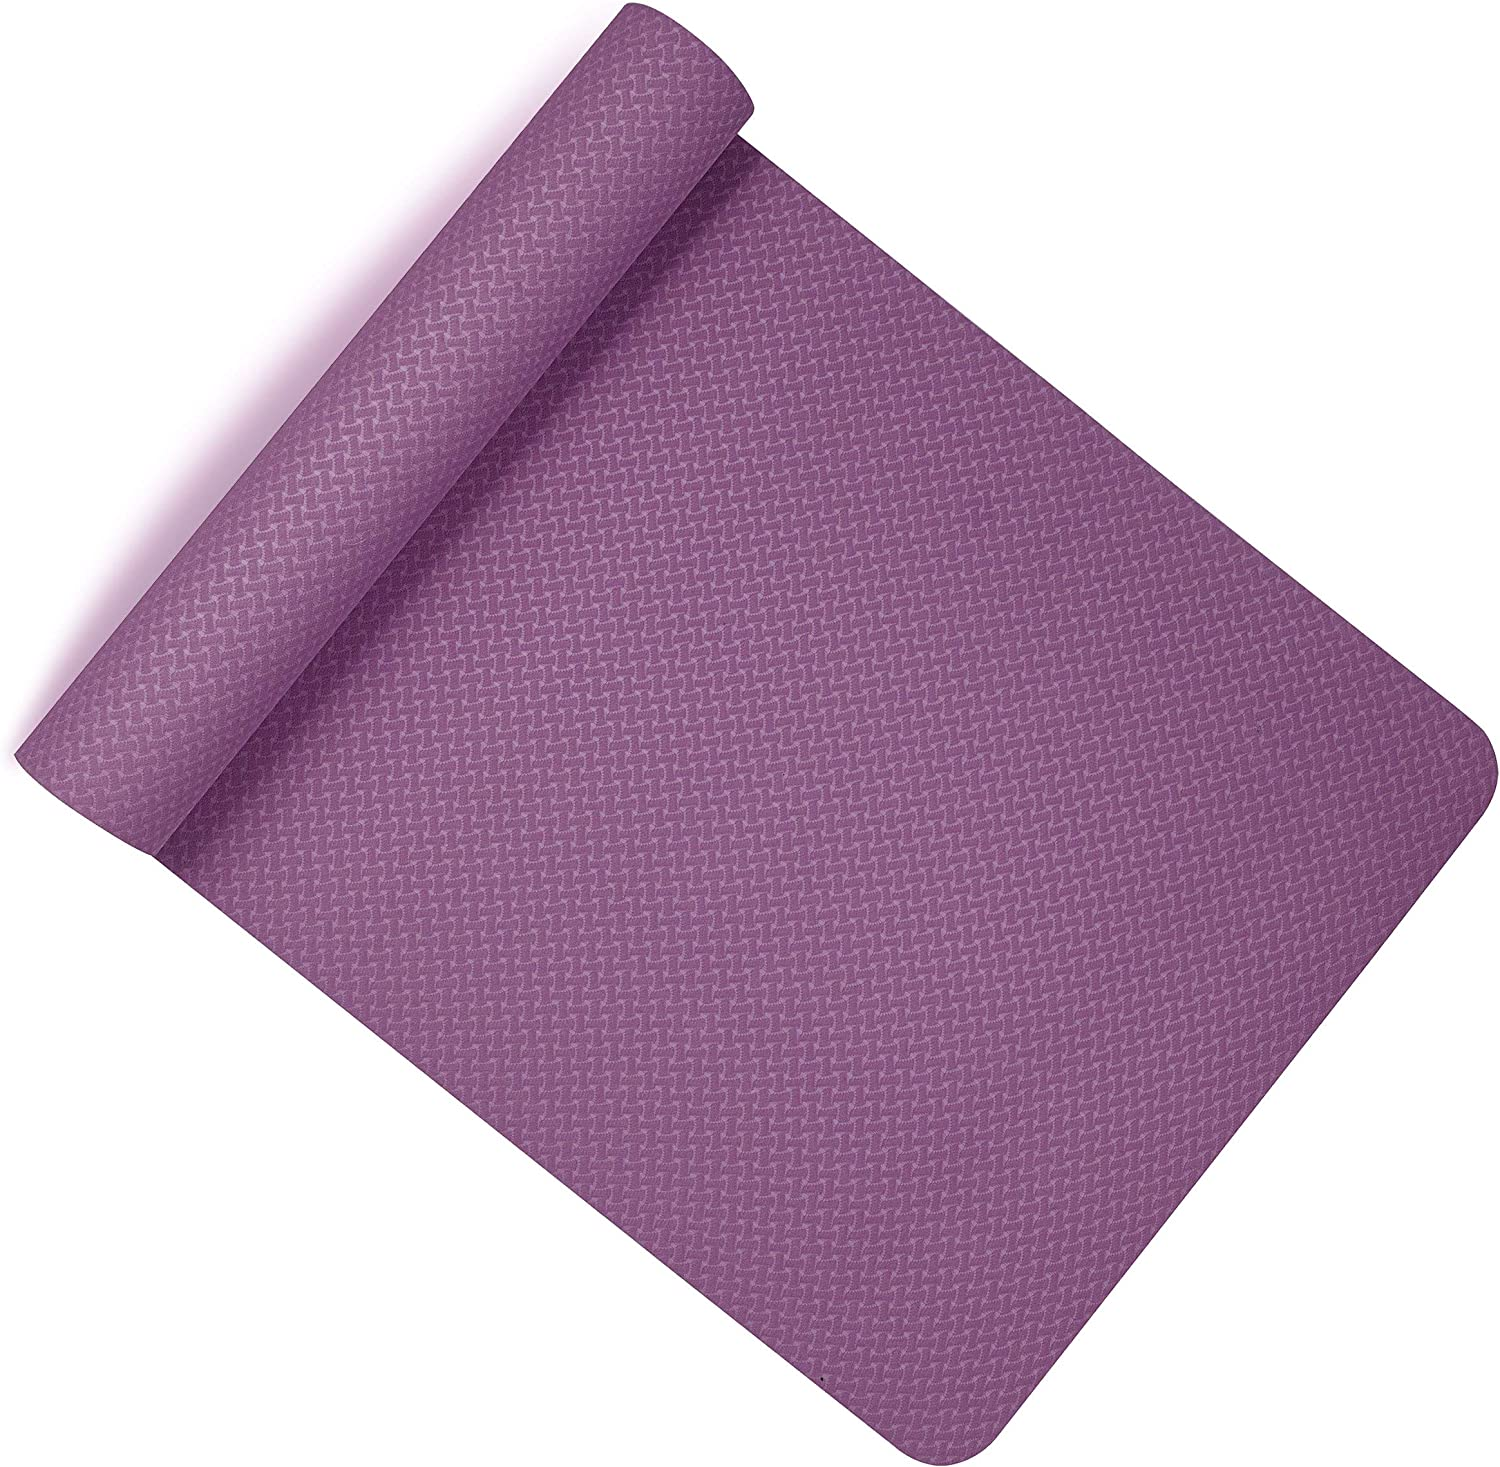 Balance Training and Fitness Two Tone Eco Exercise Mat for Gymnastics Lions TPE Yoga Mat Anti-Slip Thick Cushion with Carry Straps 183x61x0.6cm Pilates